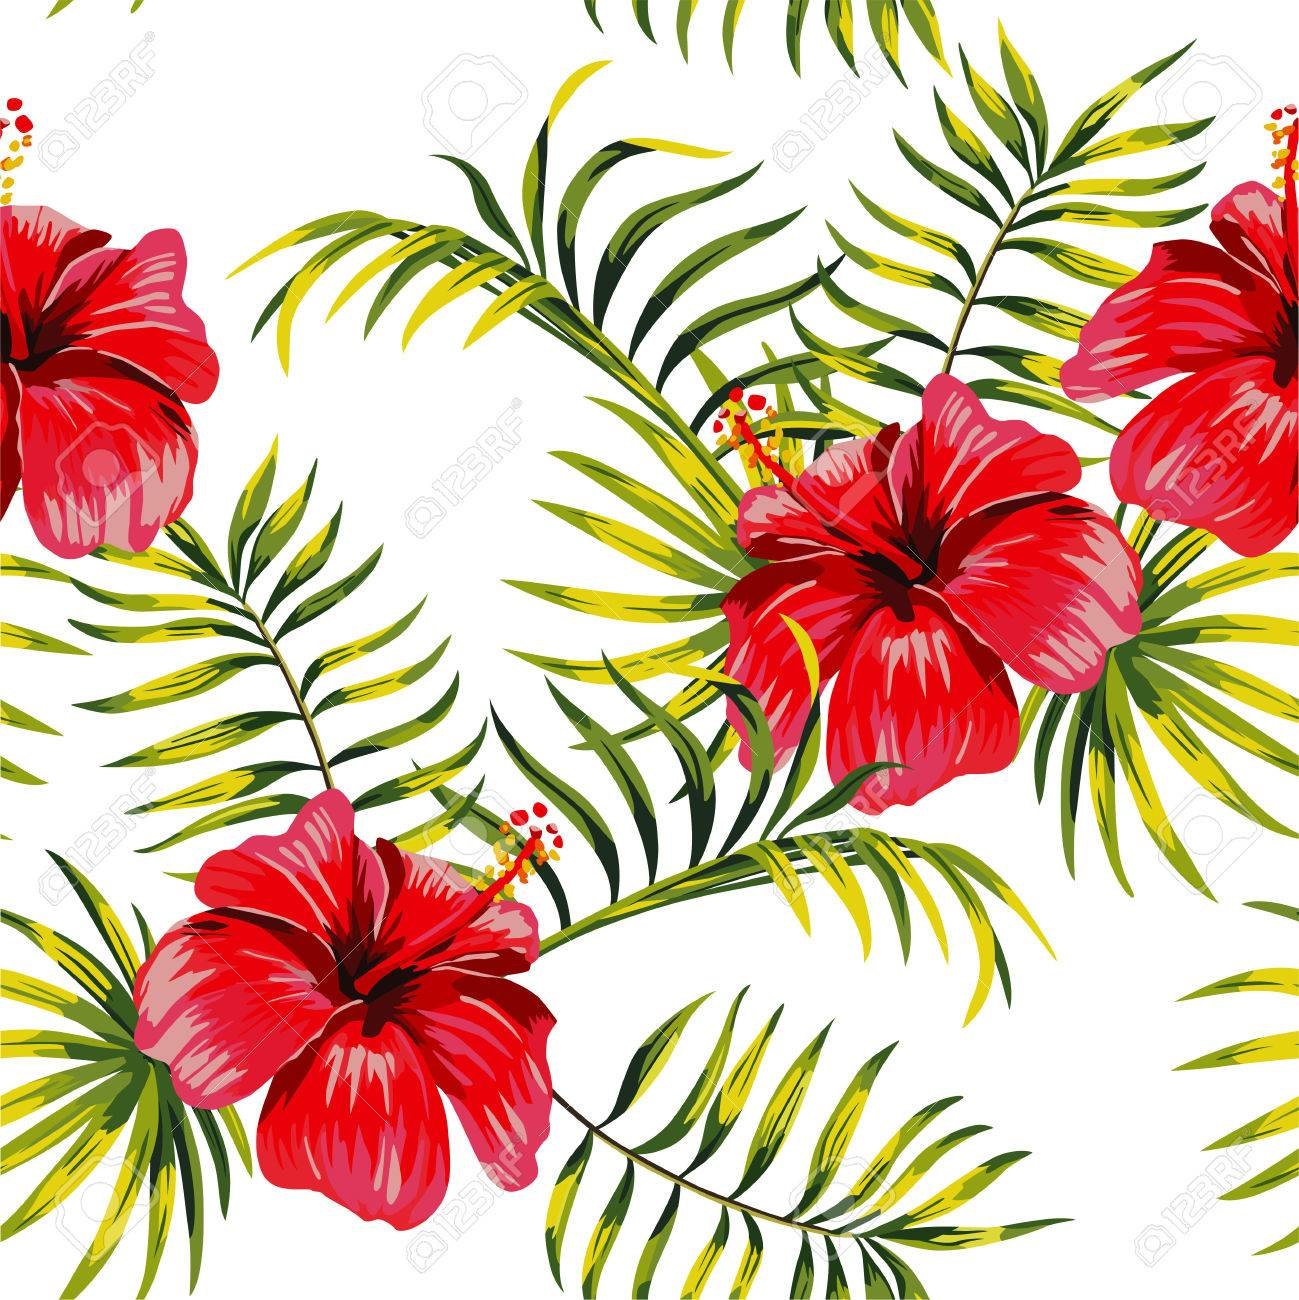 Fashion Painting Floral Print Seamless Exotic Pattern With Tropical